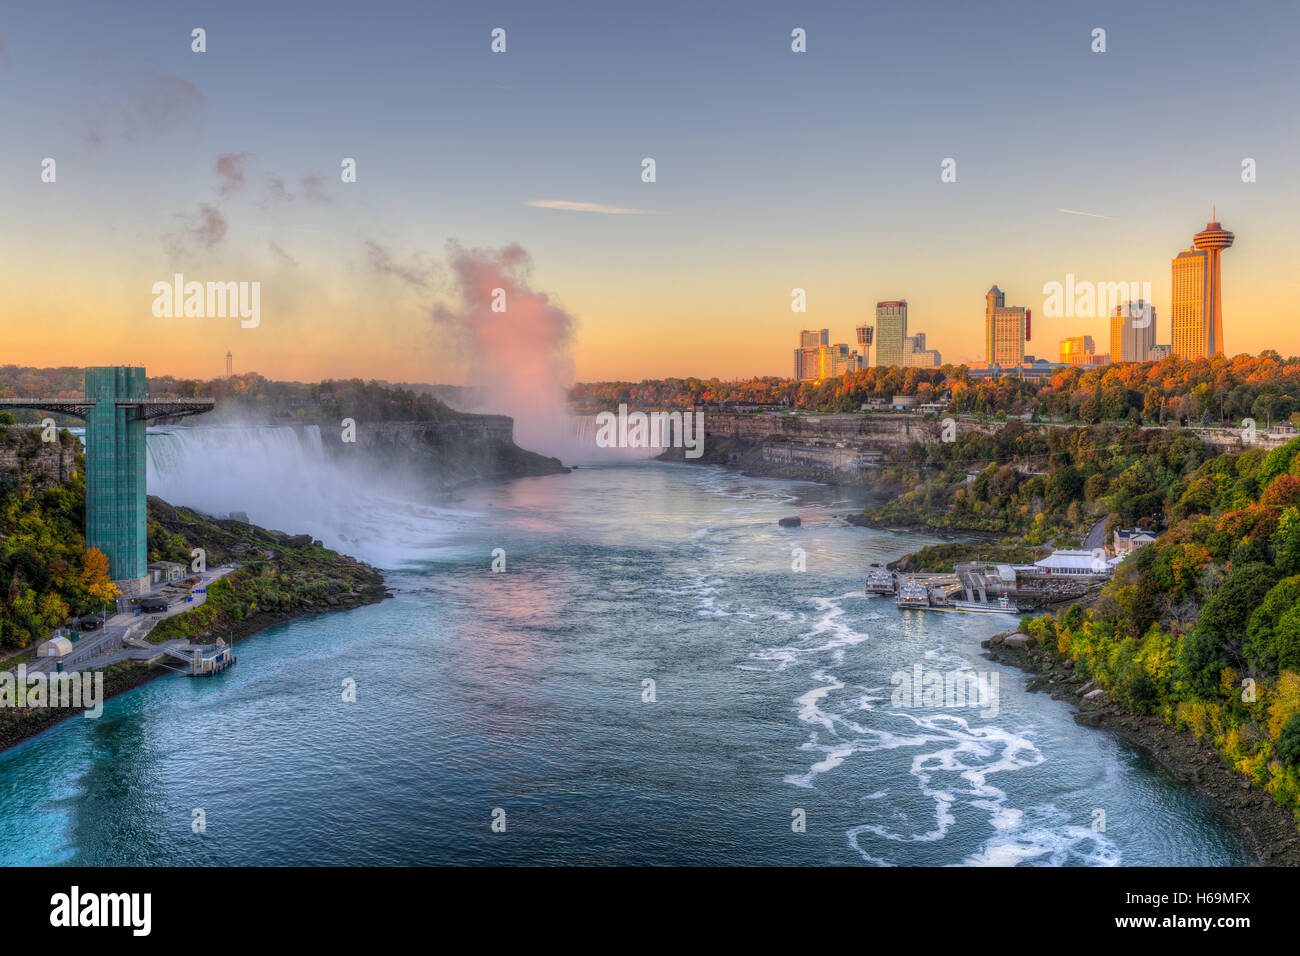 The Niagara River including the American Falls, Horseshoe Falls, and skyline of Niagara Falls, Ontario just after - Stock Image